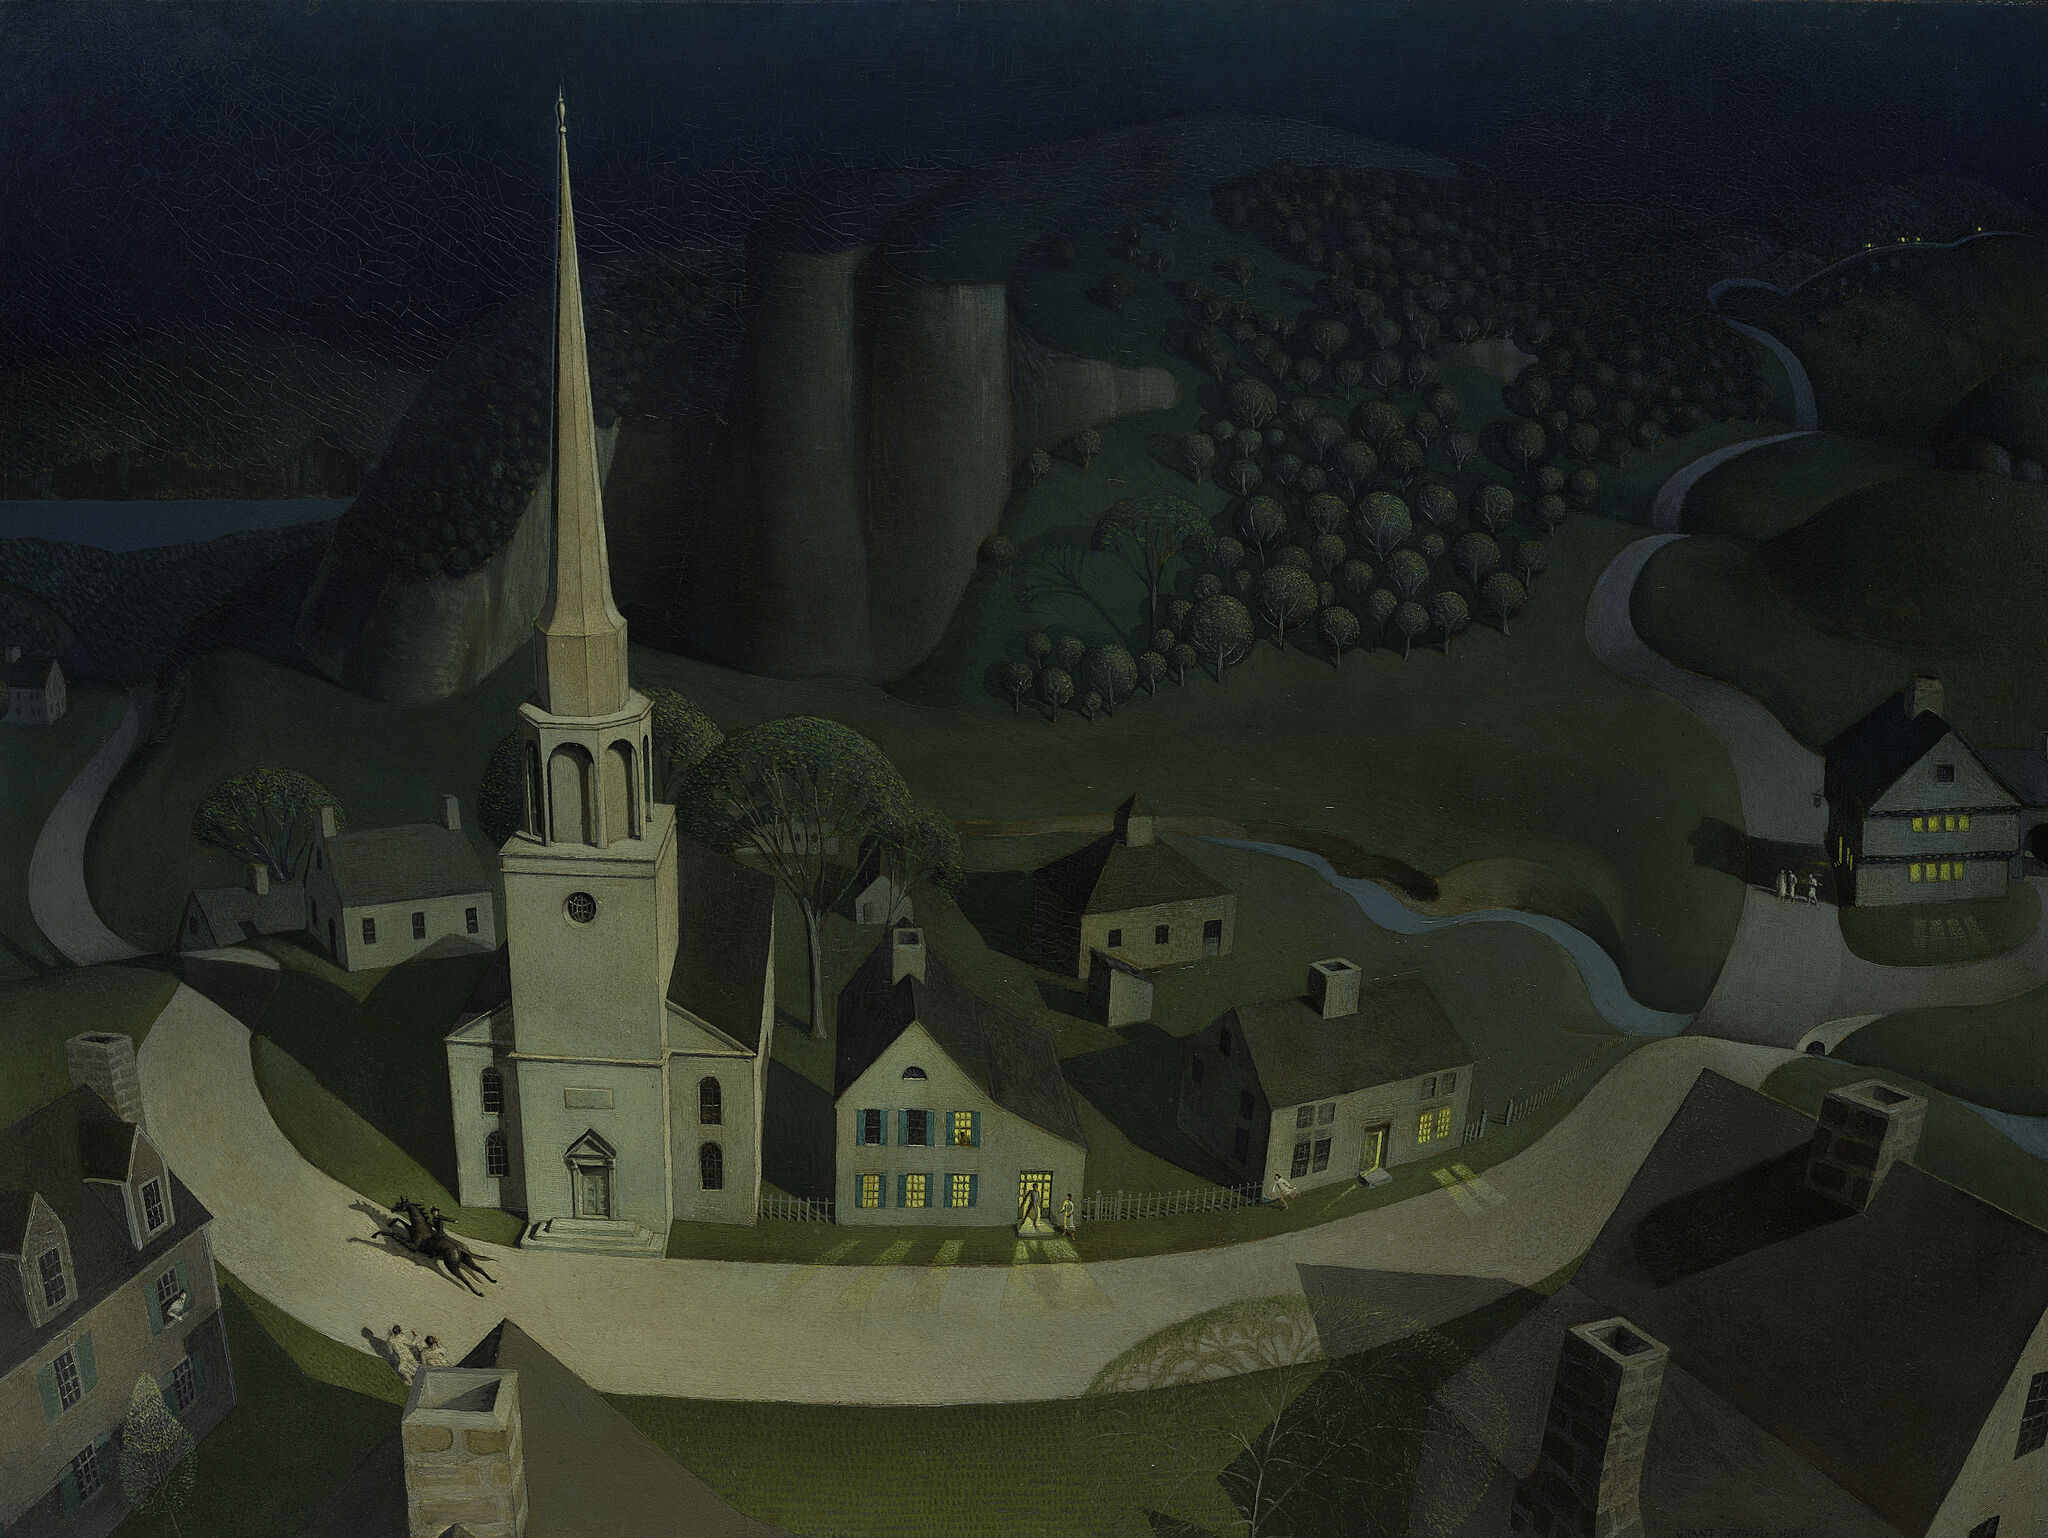 Painting of Boston with Paul Revere riding on horseback through streets.